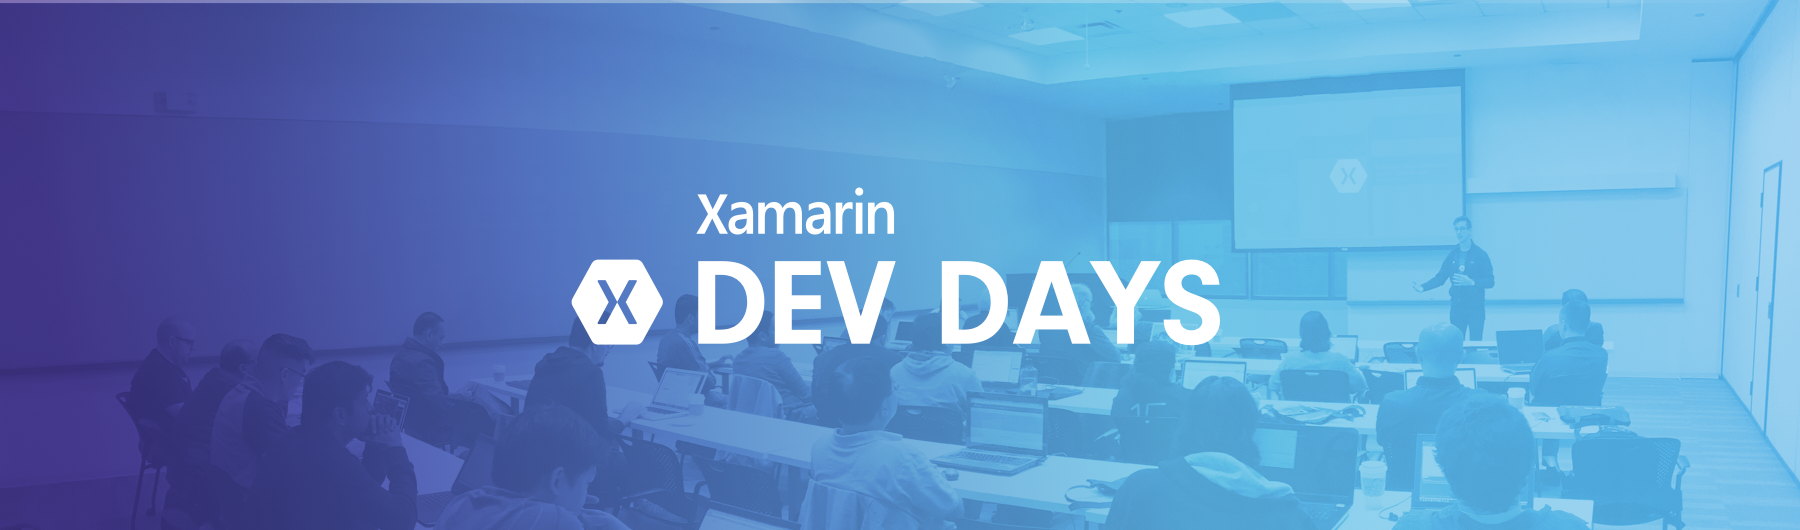 Xamarin Dev Days - St. Petersburg